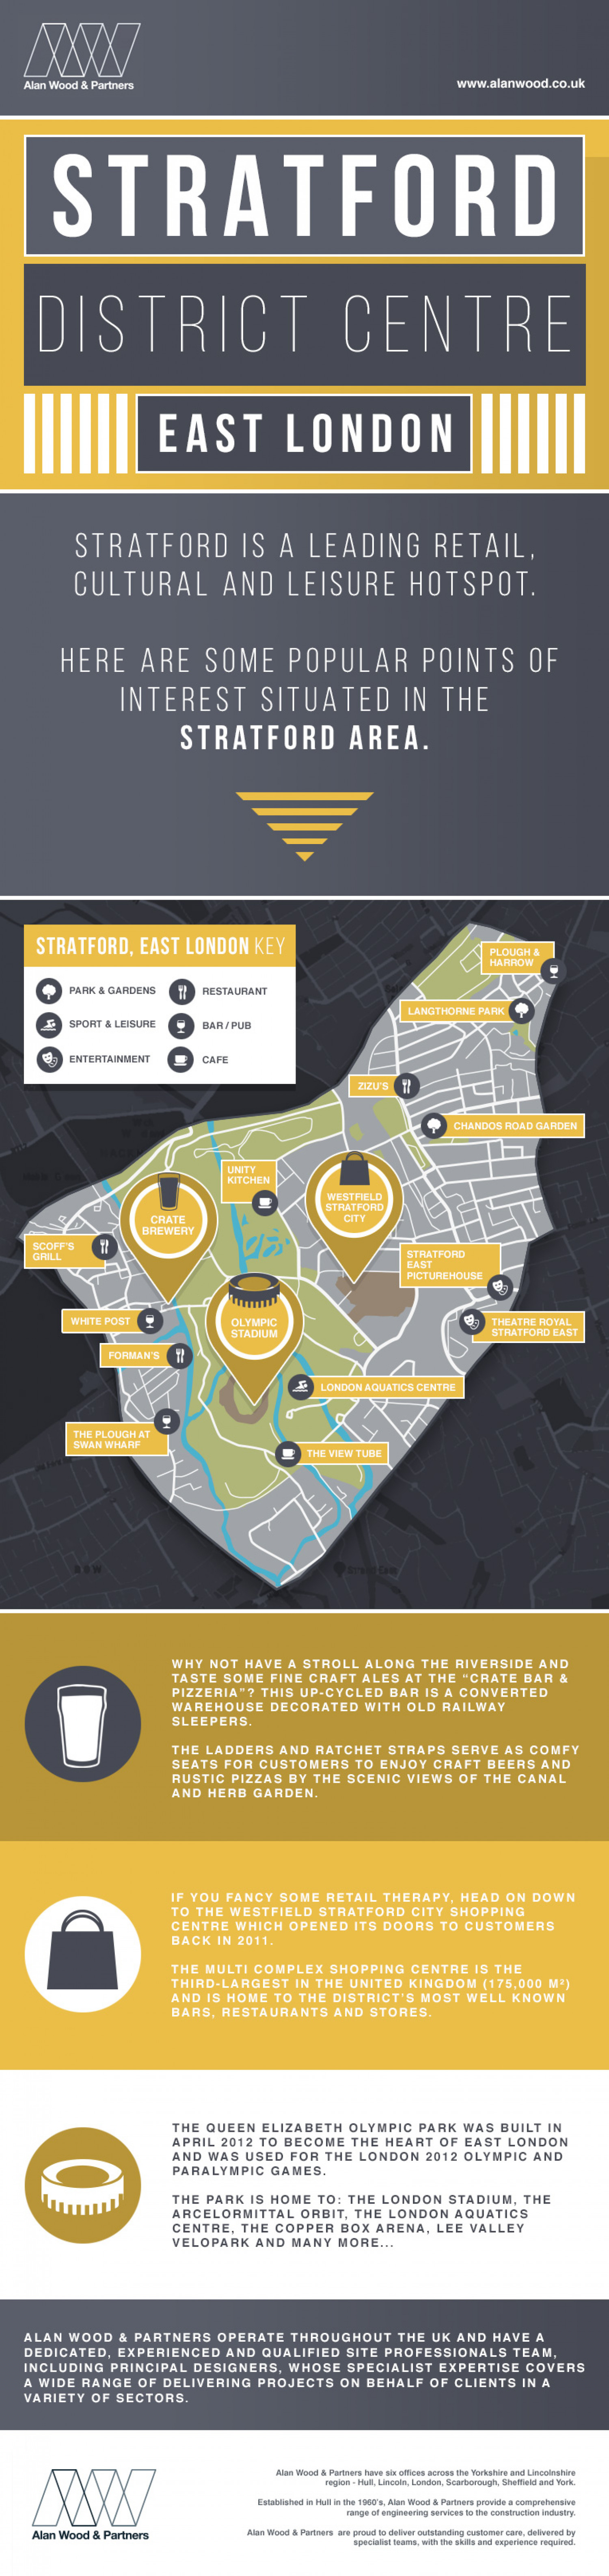 Stratford District Centre Infographic